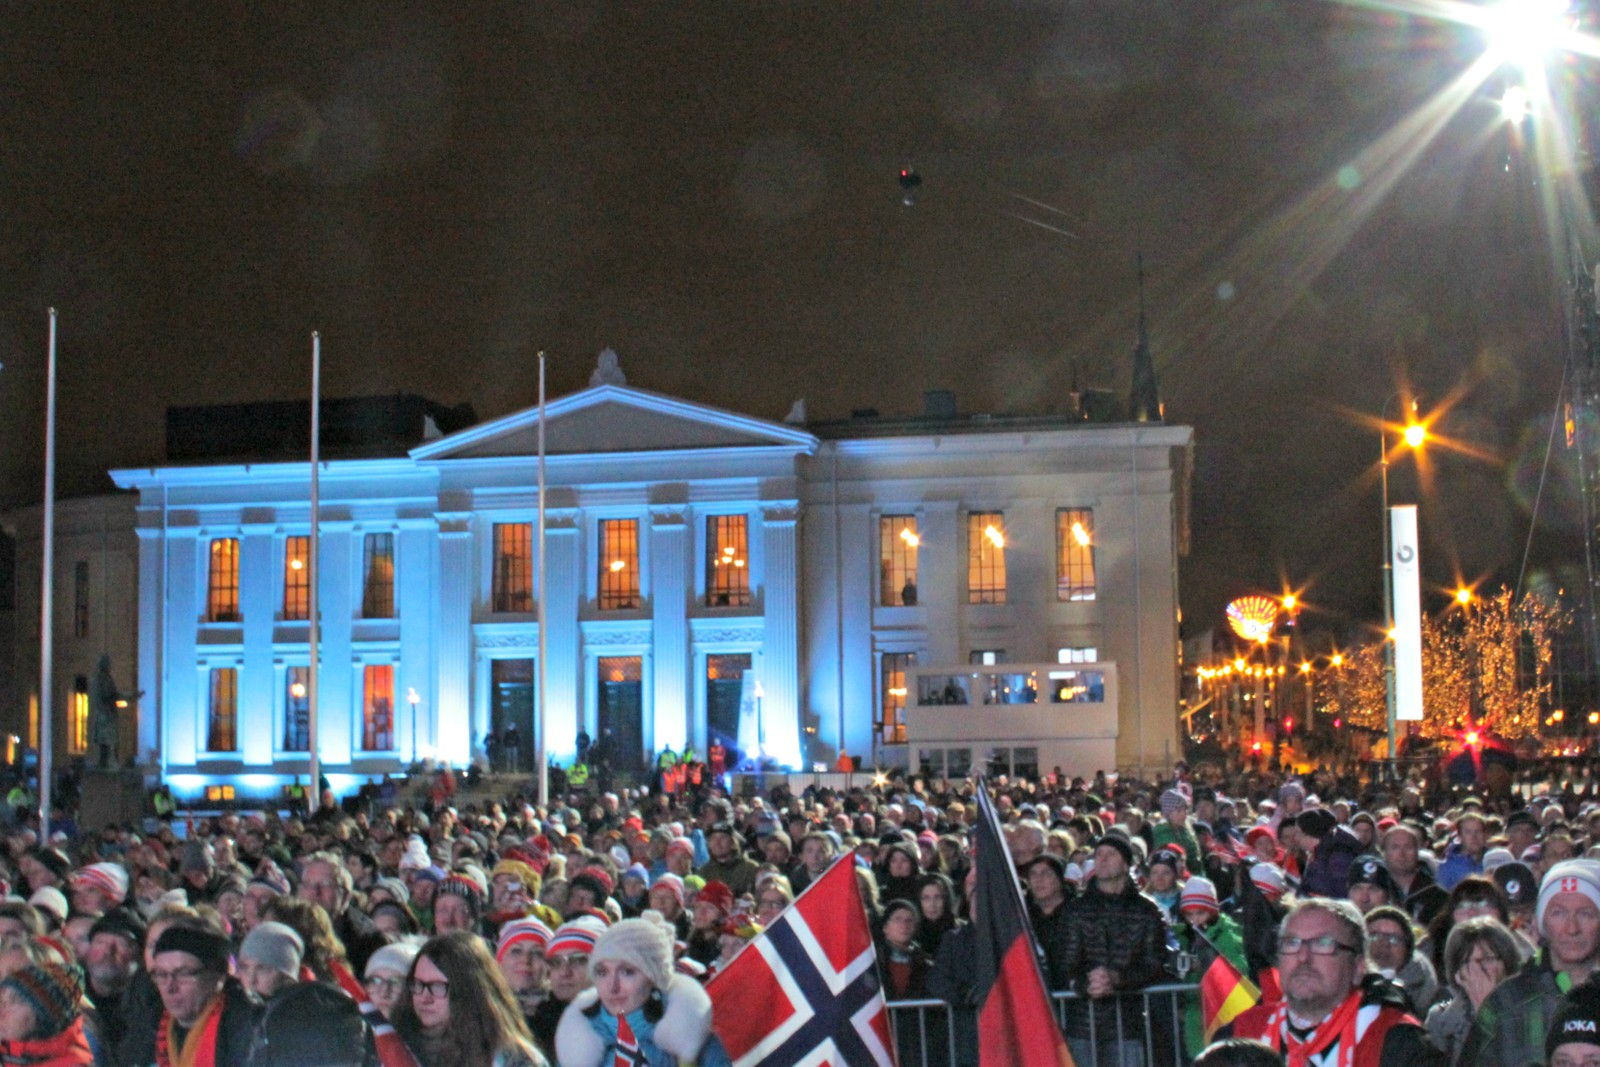 Crowds at the medal award ceremony at the University Square in downtown Oslo.